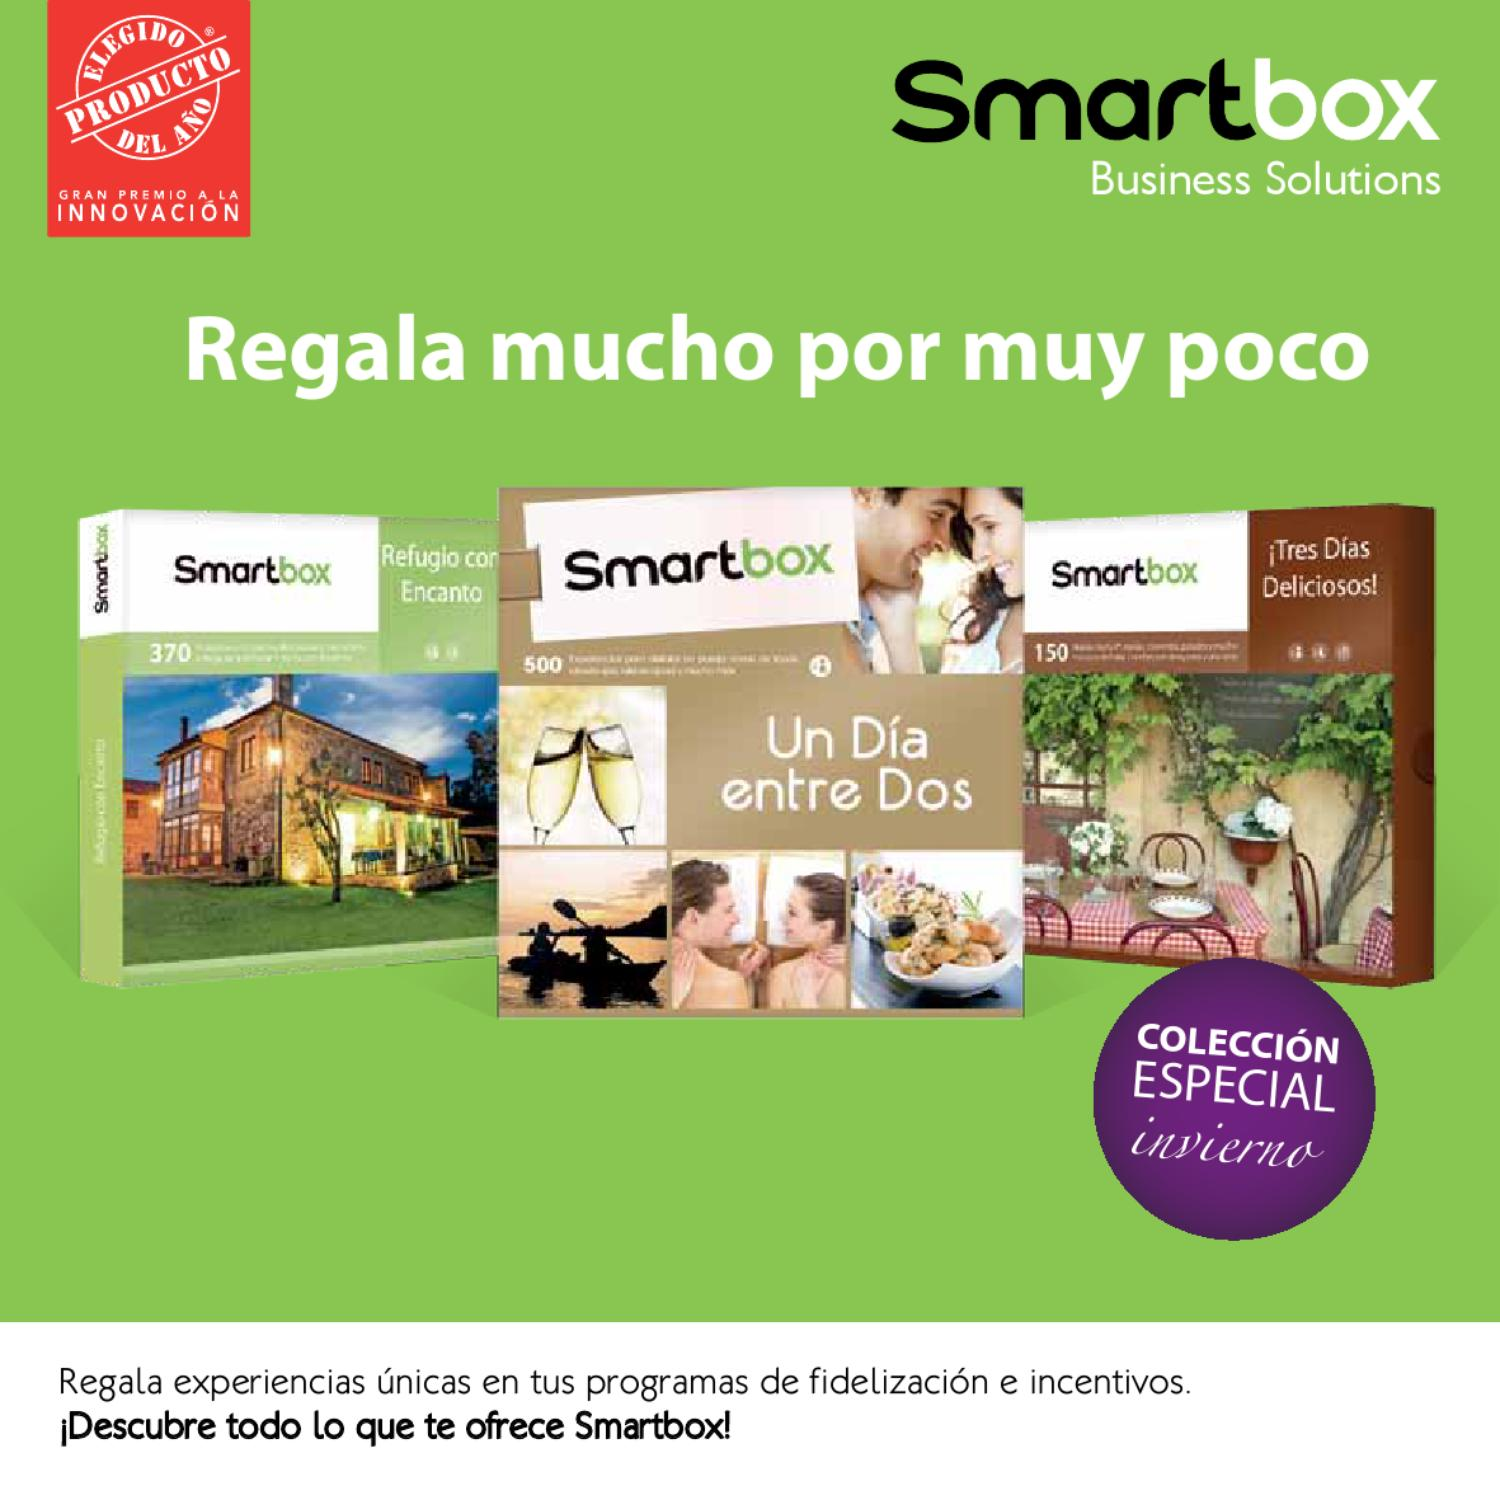 Smartbox Cocinas Del Mundo Folleto B2b Marzo 2013 By Smartbox Barcelona Issuu